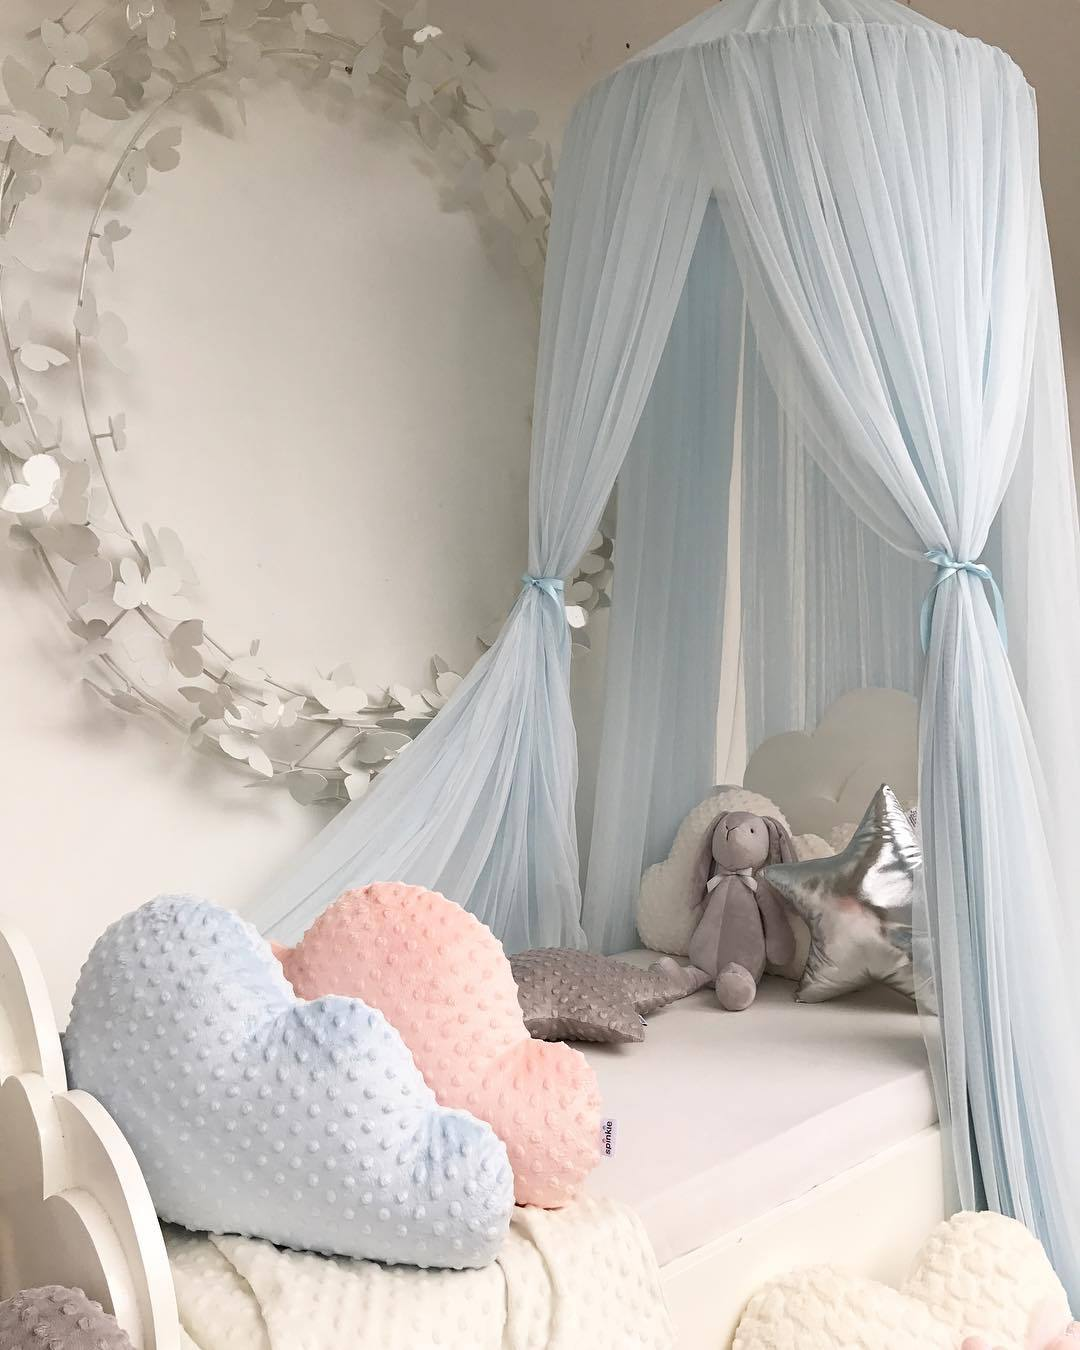 Round Baby Bed Mosquito Net Dome Hanging Gauze Bed Canopy Mosquito Net Princess Kids Crib Canopy Hanging Play Tent